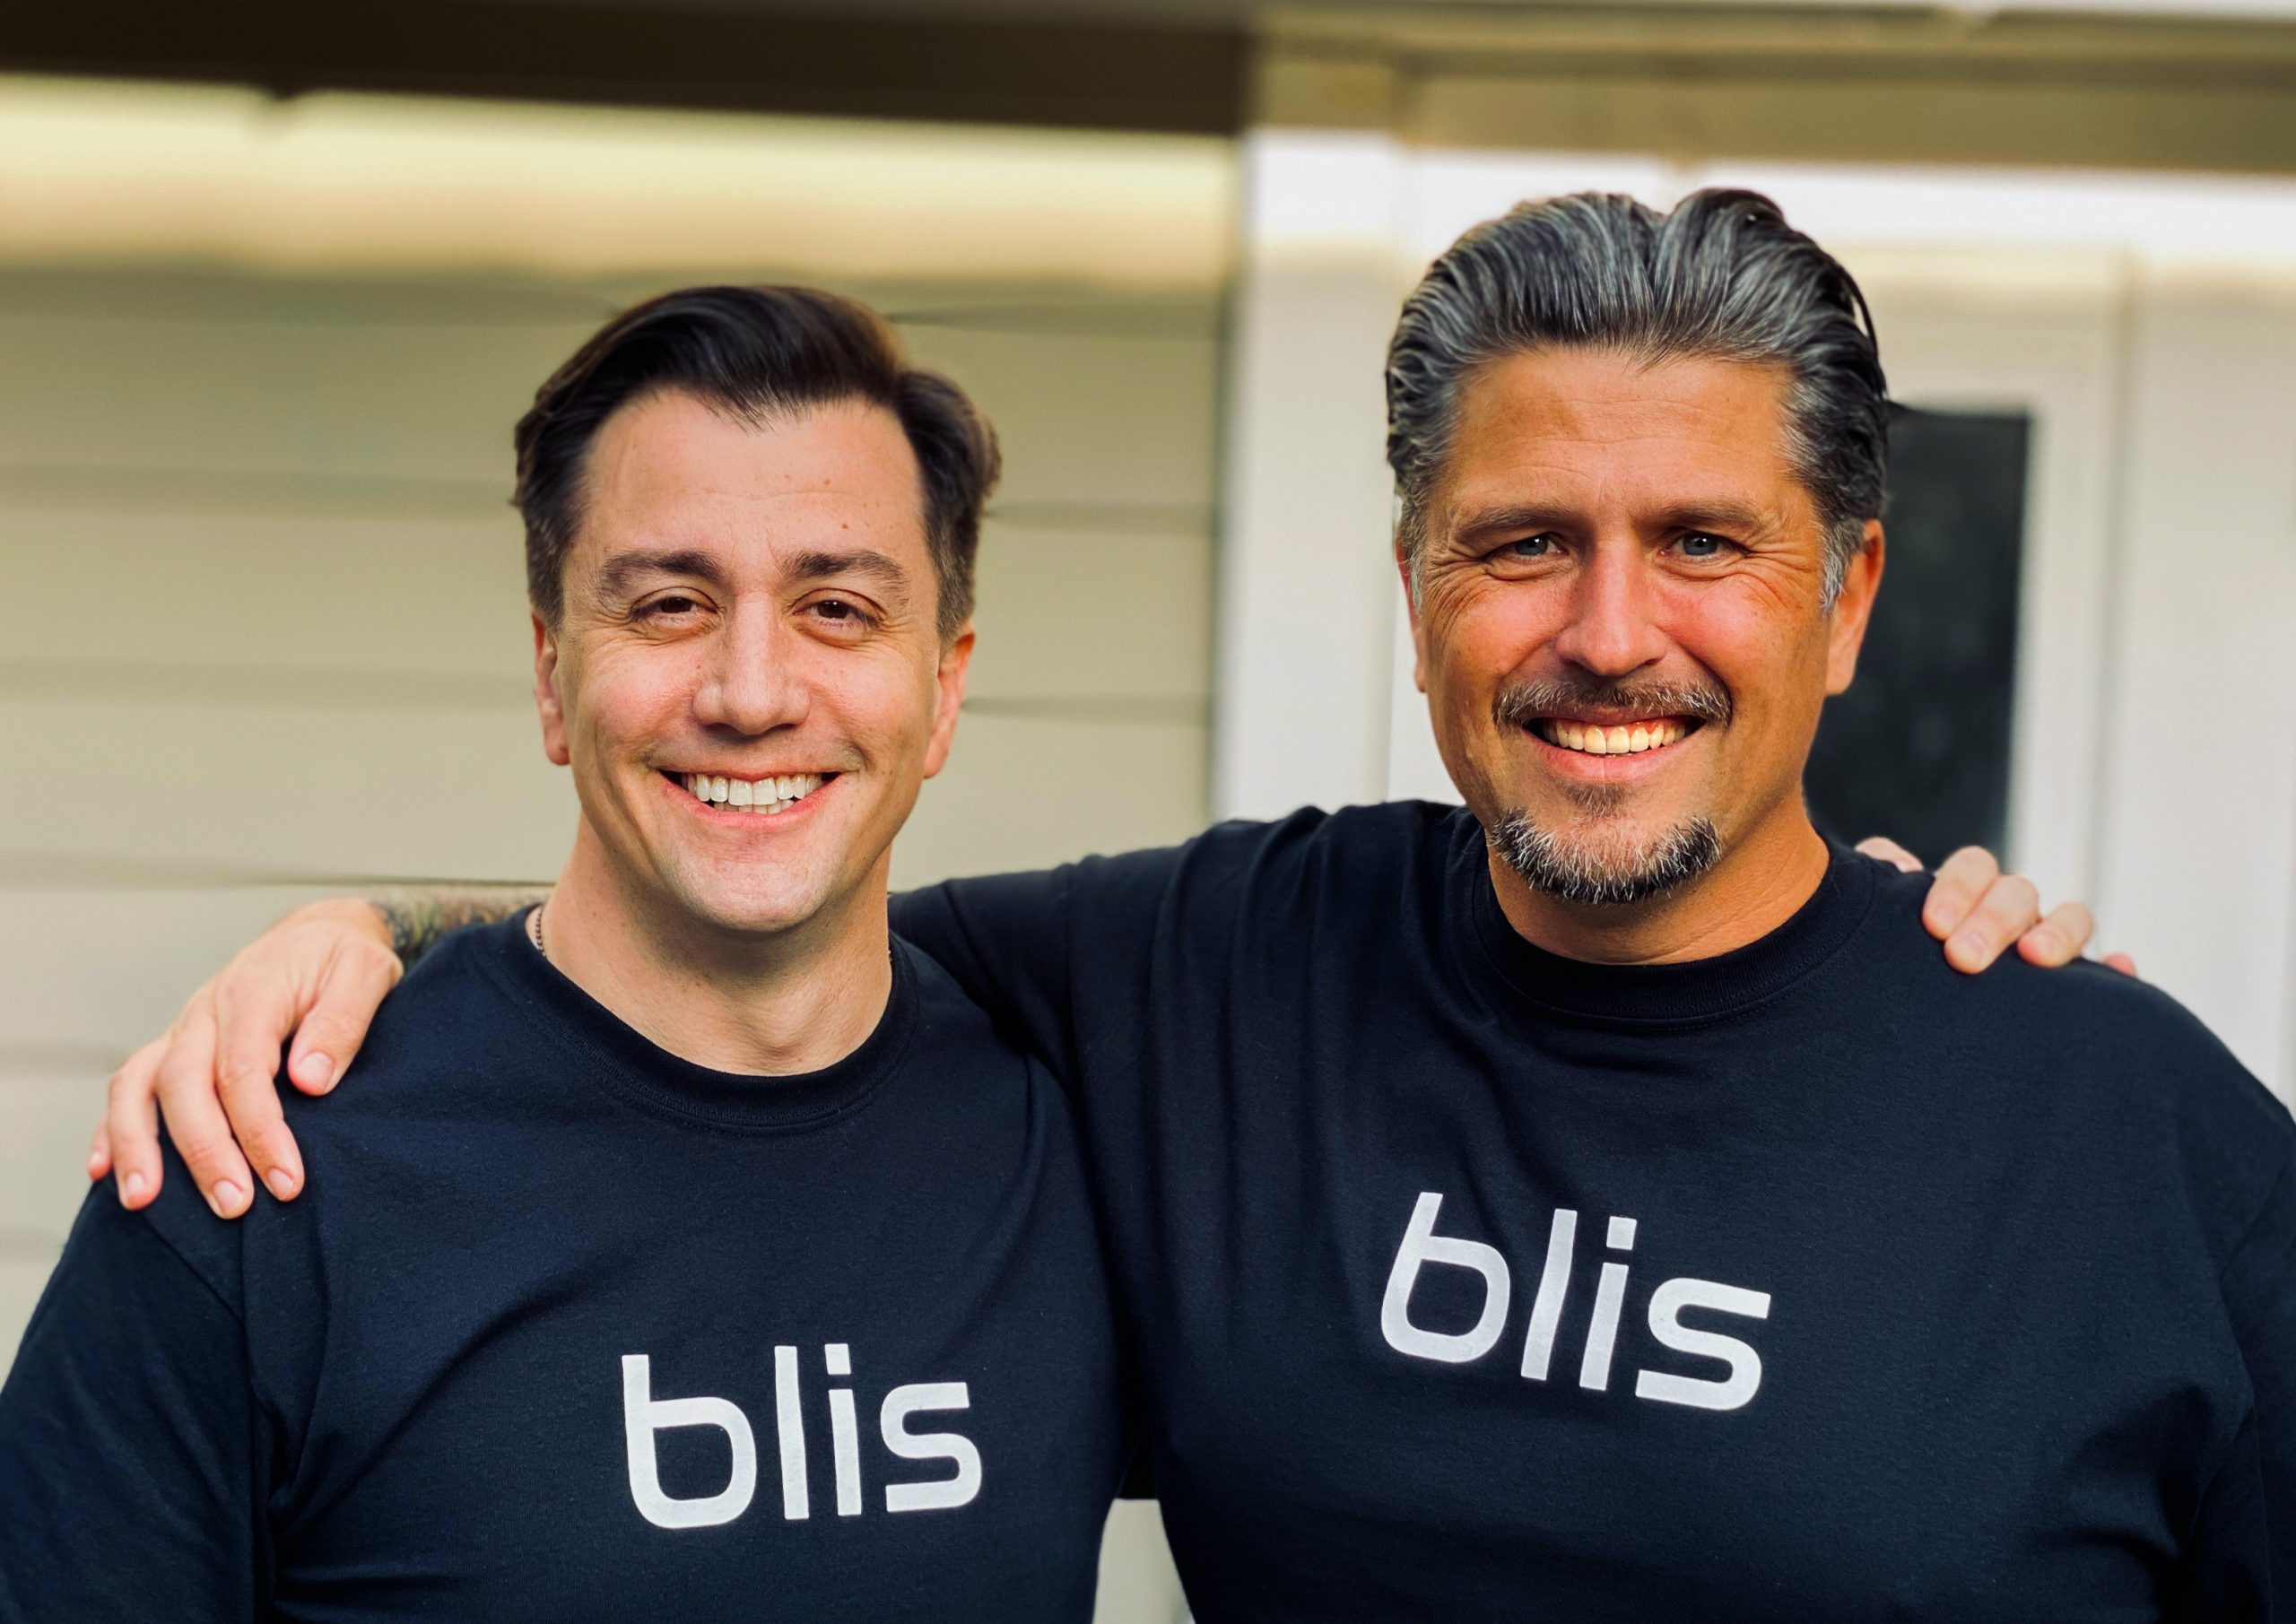 Third Summit acquires freelancer platform Blis